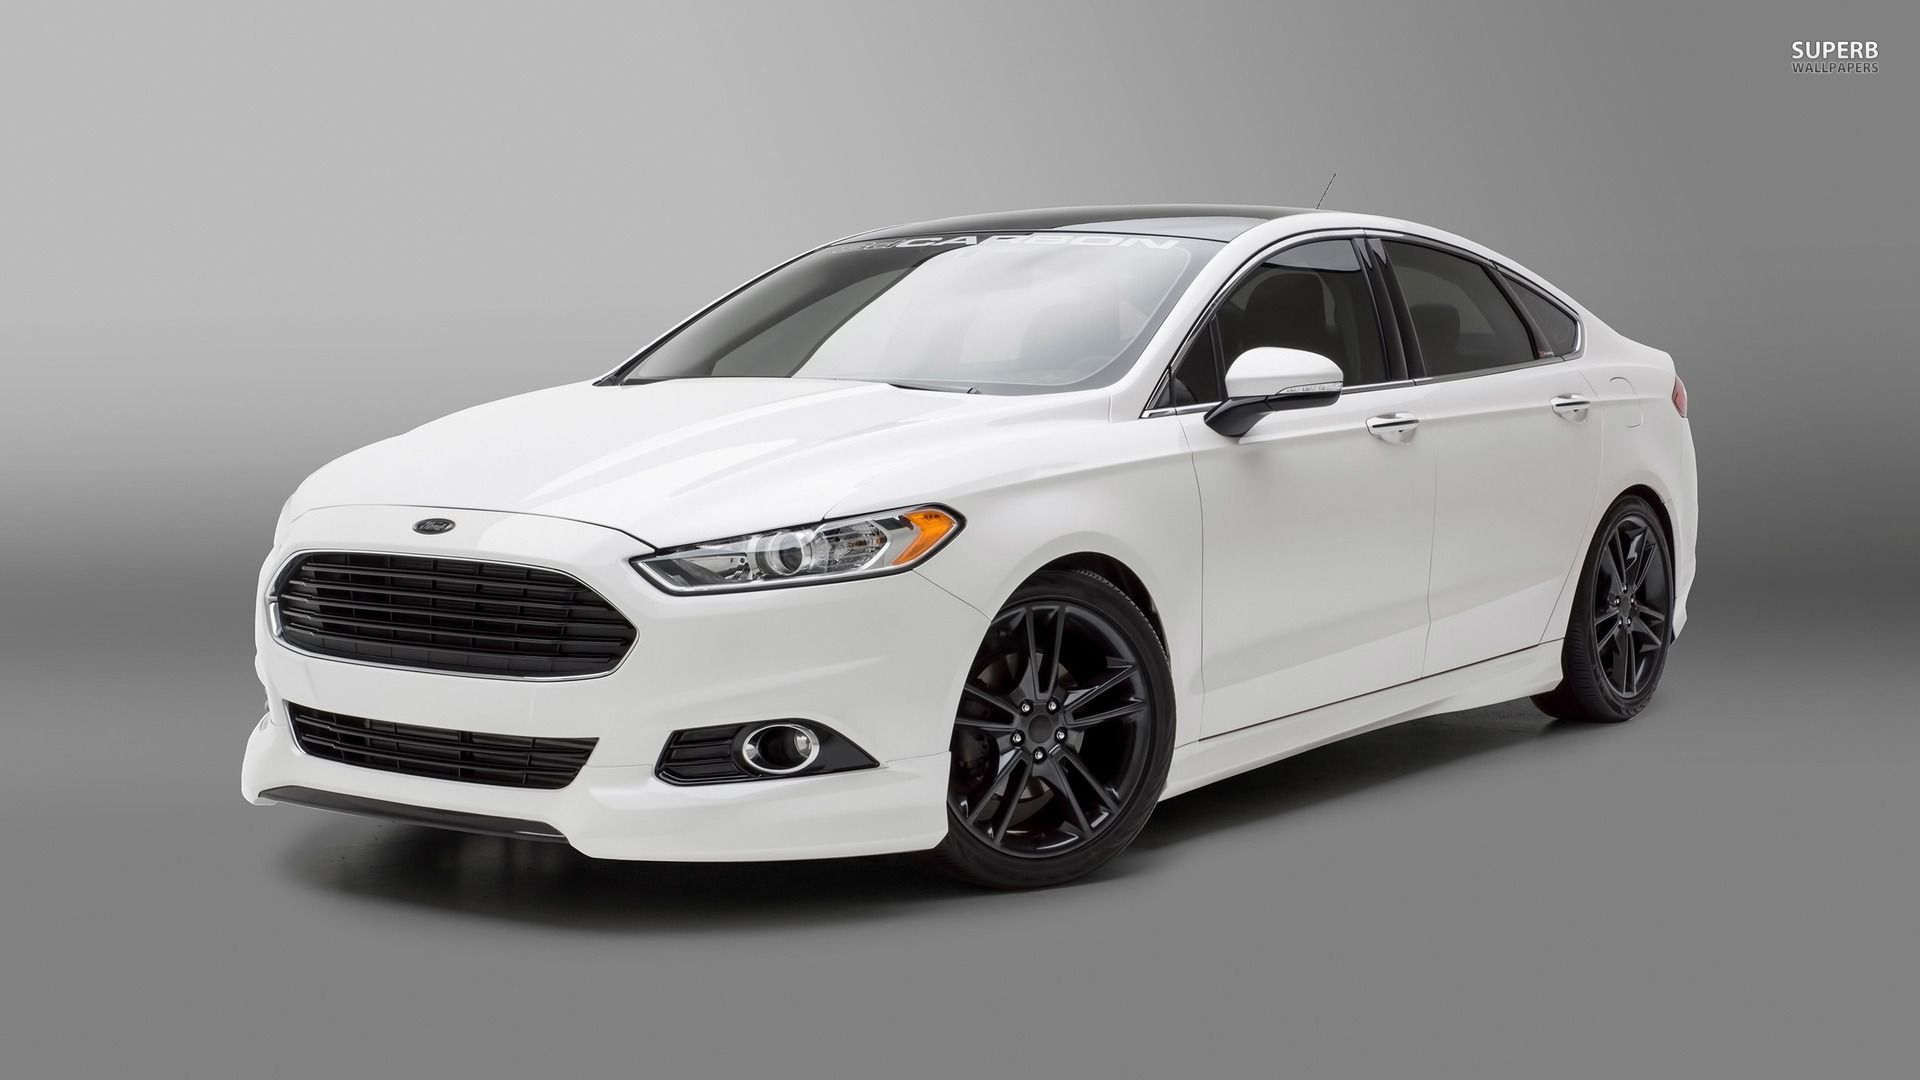 2015 ford fusion hd wallpaper httpwallsautocom2015 - 2015 Ford Fusion Titanium Black